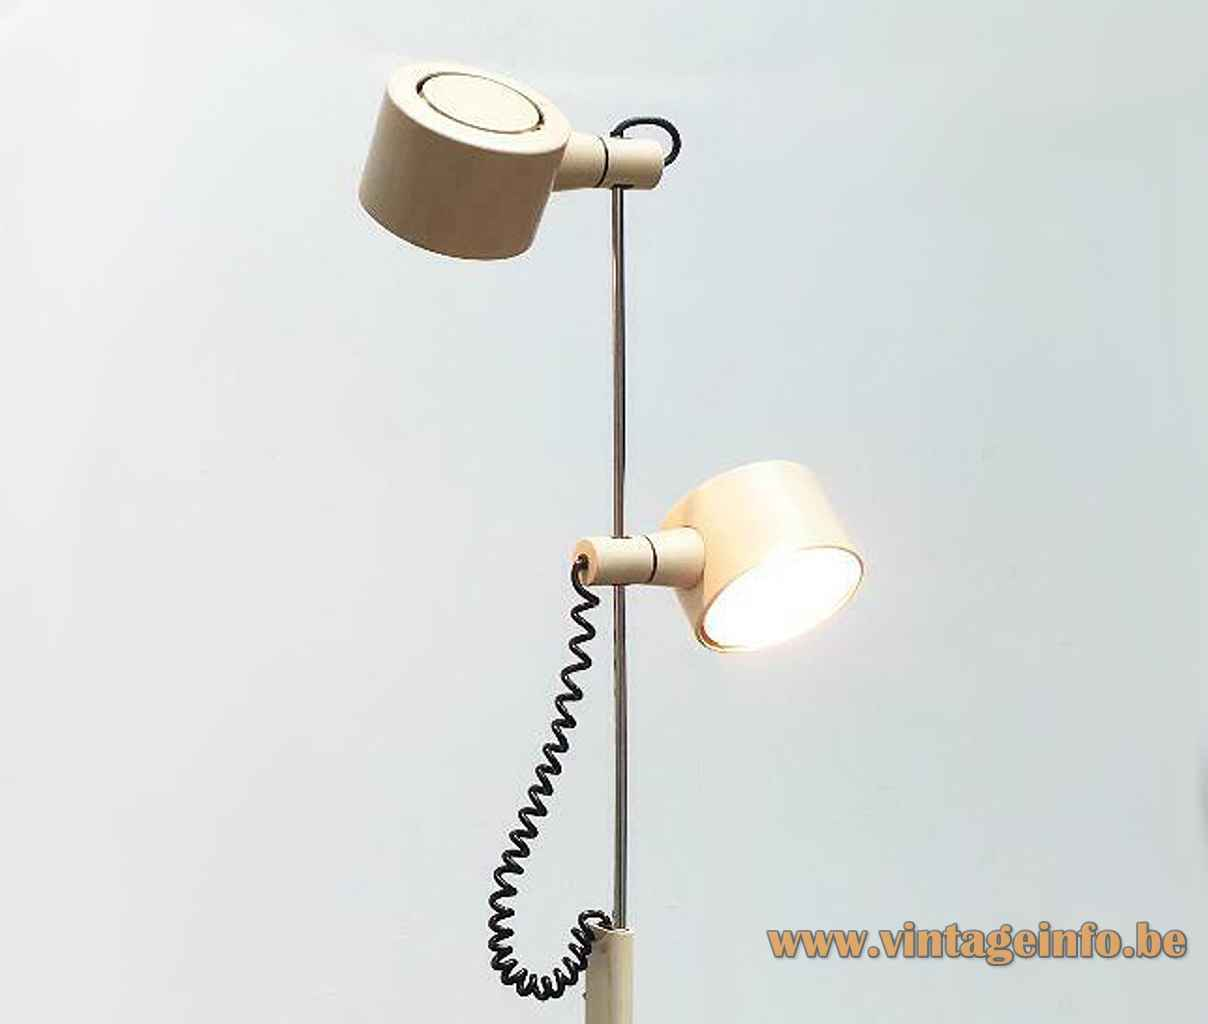 Conelight double floor lamp adjustable chrome rod pivoting round lampshades spiral cord 1970s United Kingdom